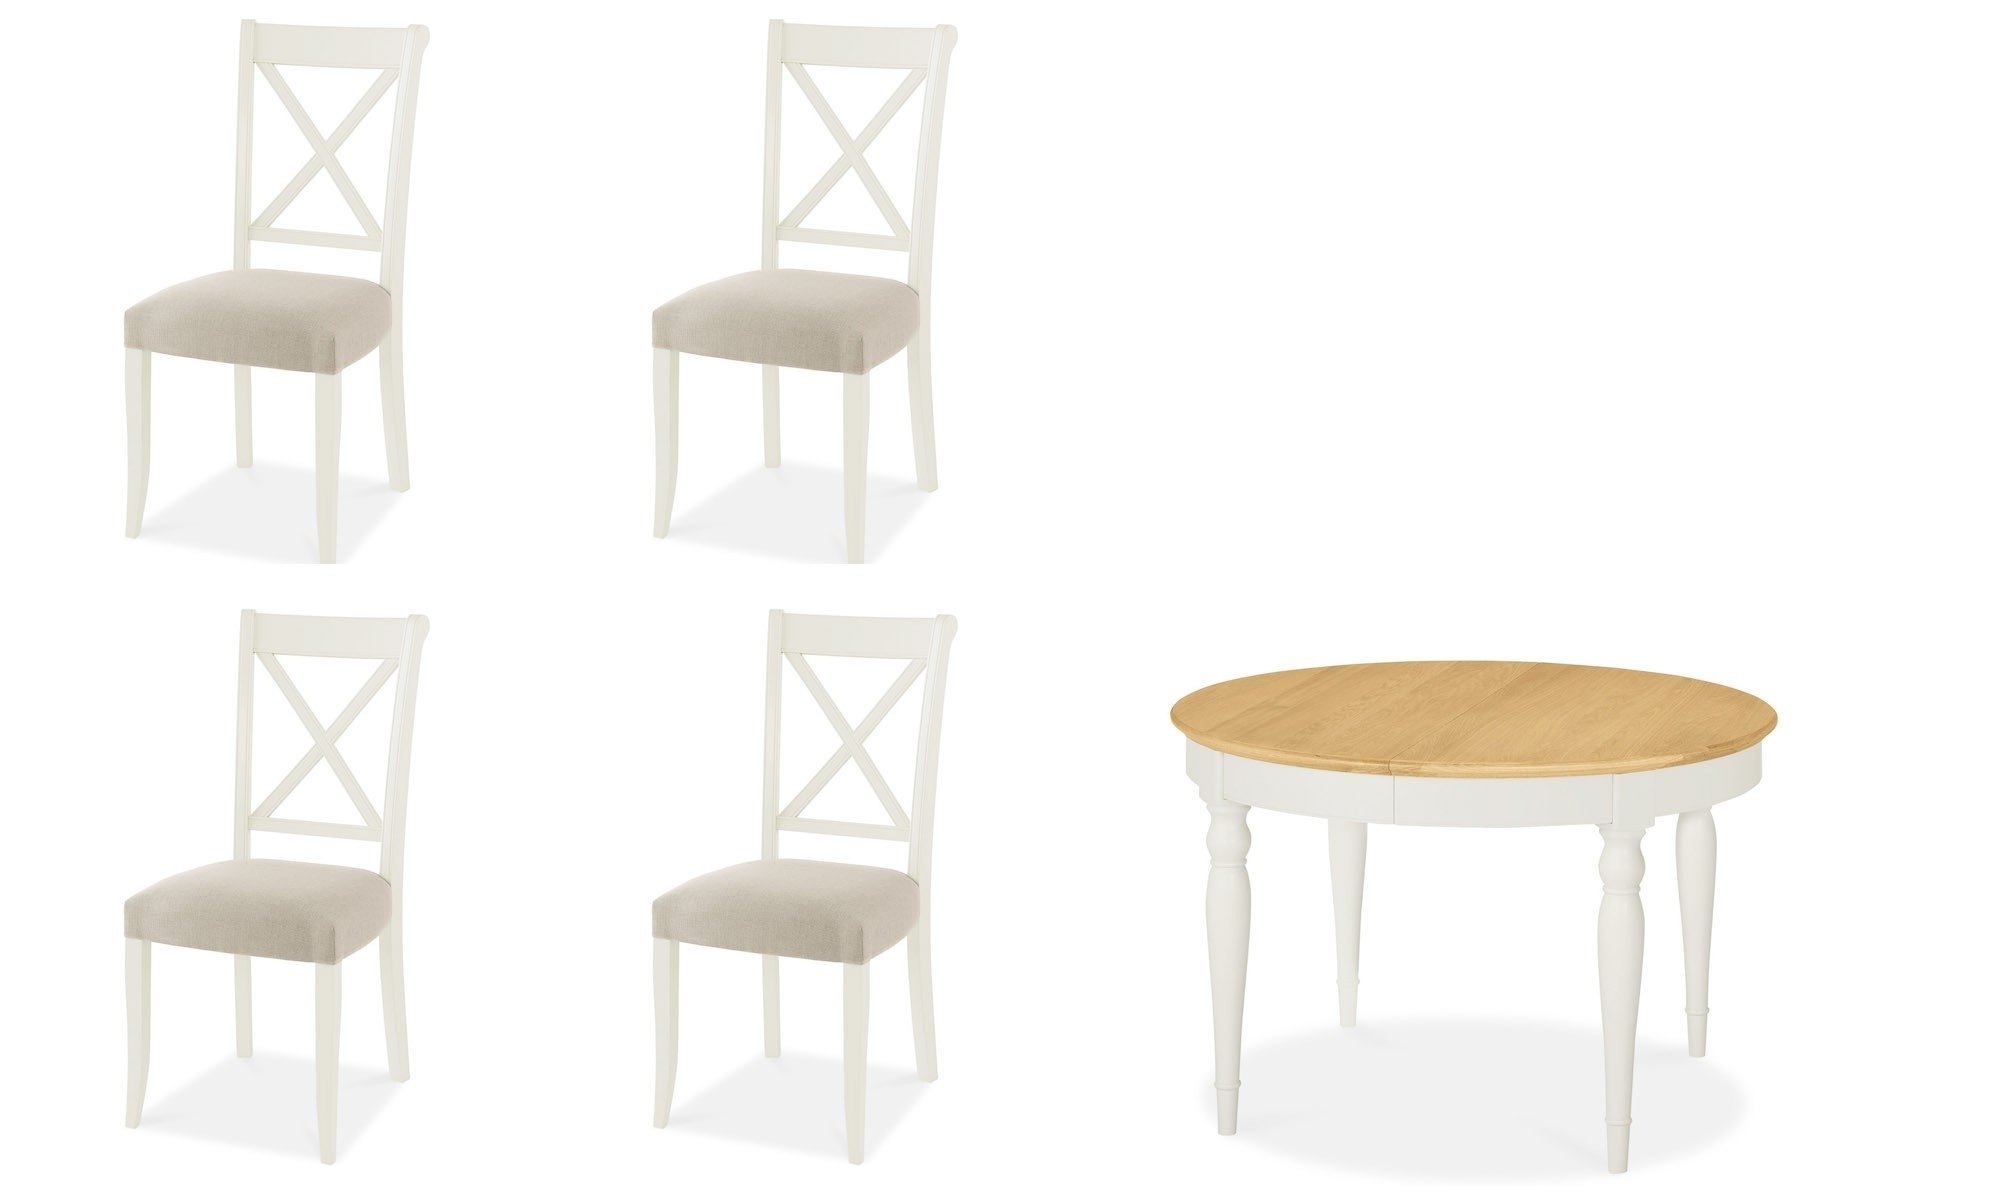 Georgie – Round Extending Dining Table And Chairs In Cream – Oak Top Intended For Well Liked Round Extending Oak Dining Tables And Chairs (View 14 of 25)